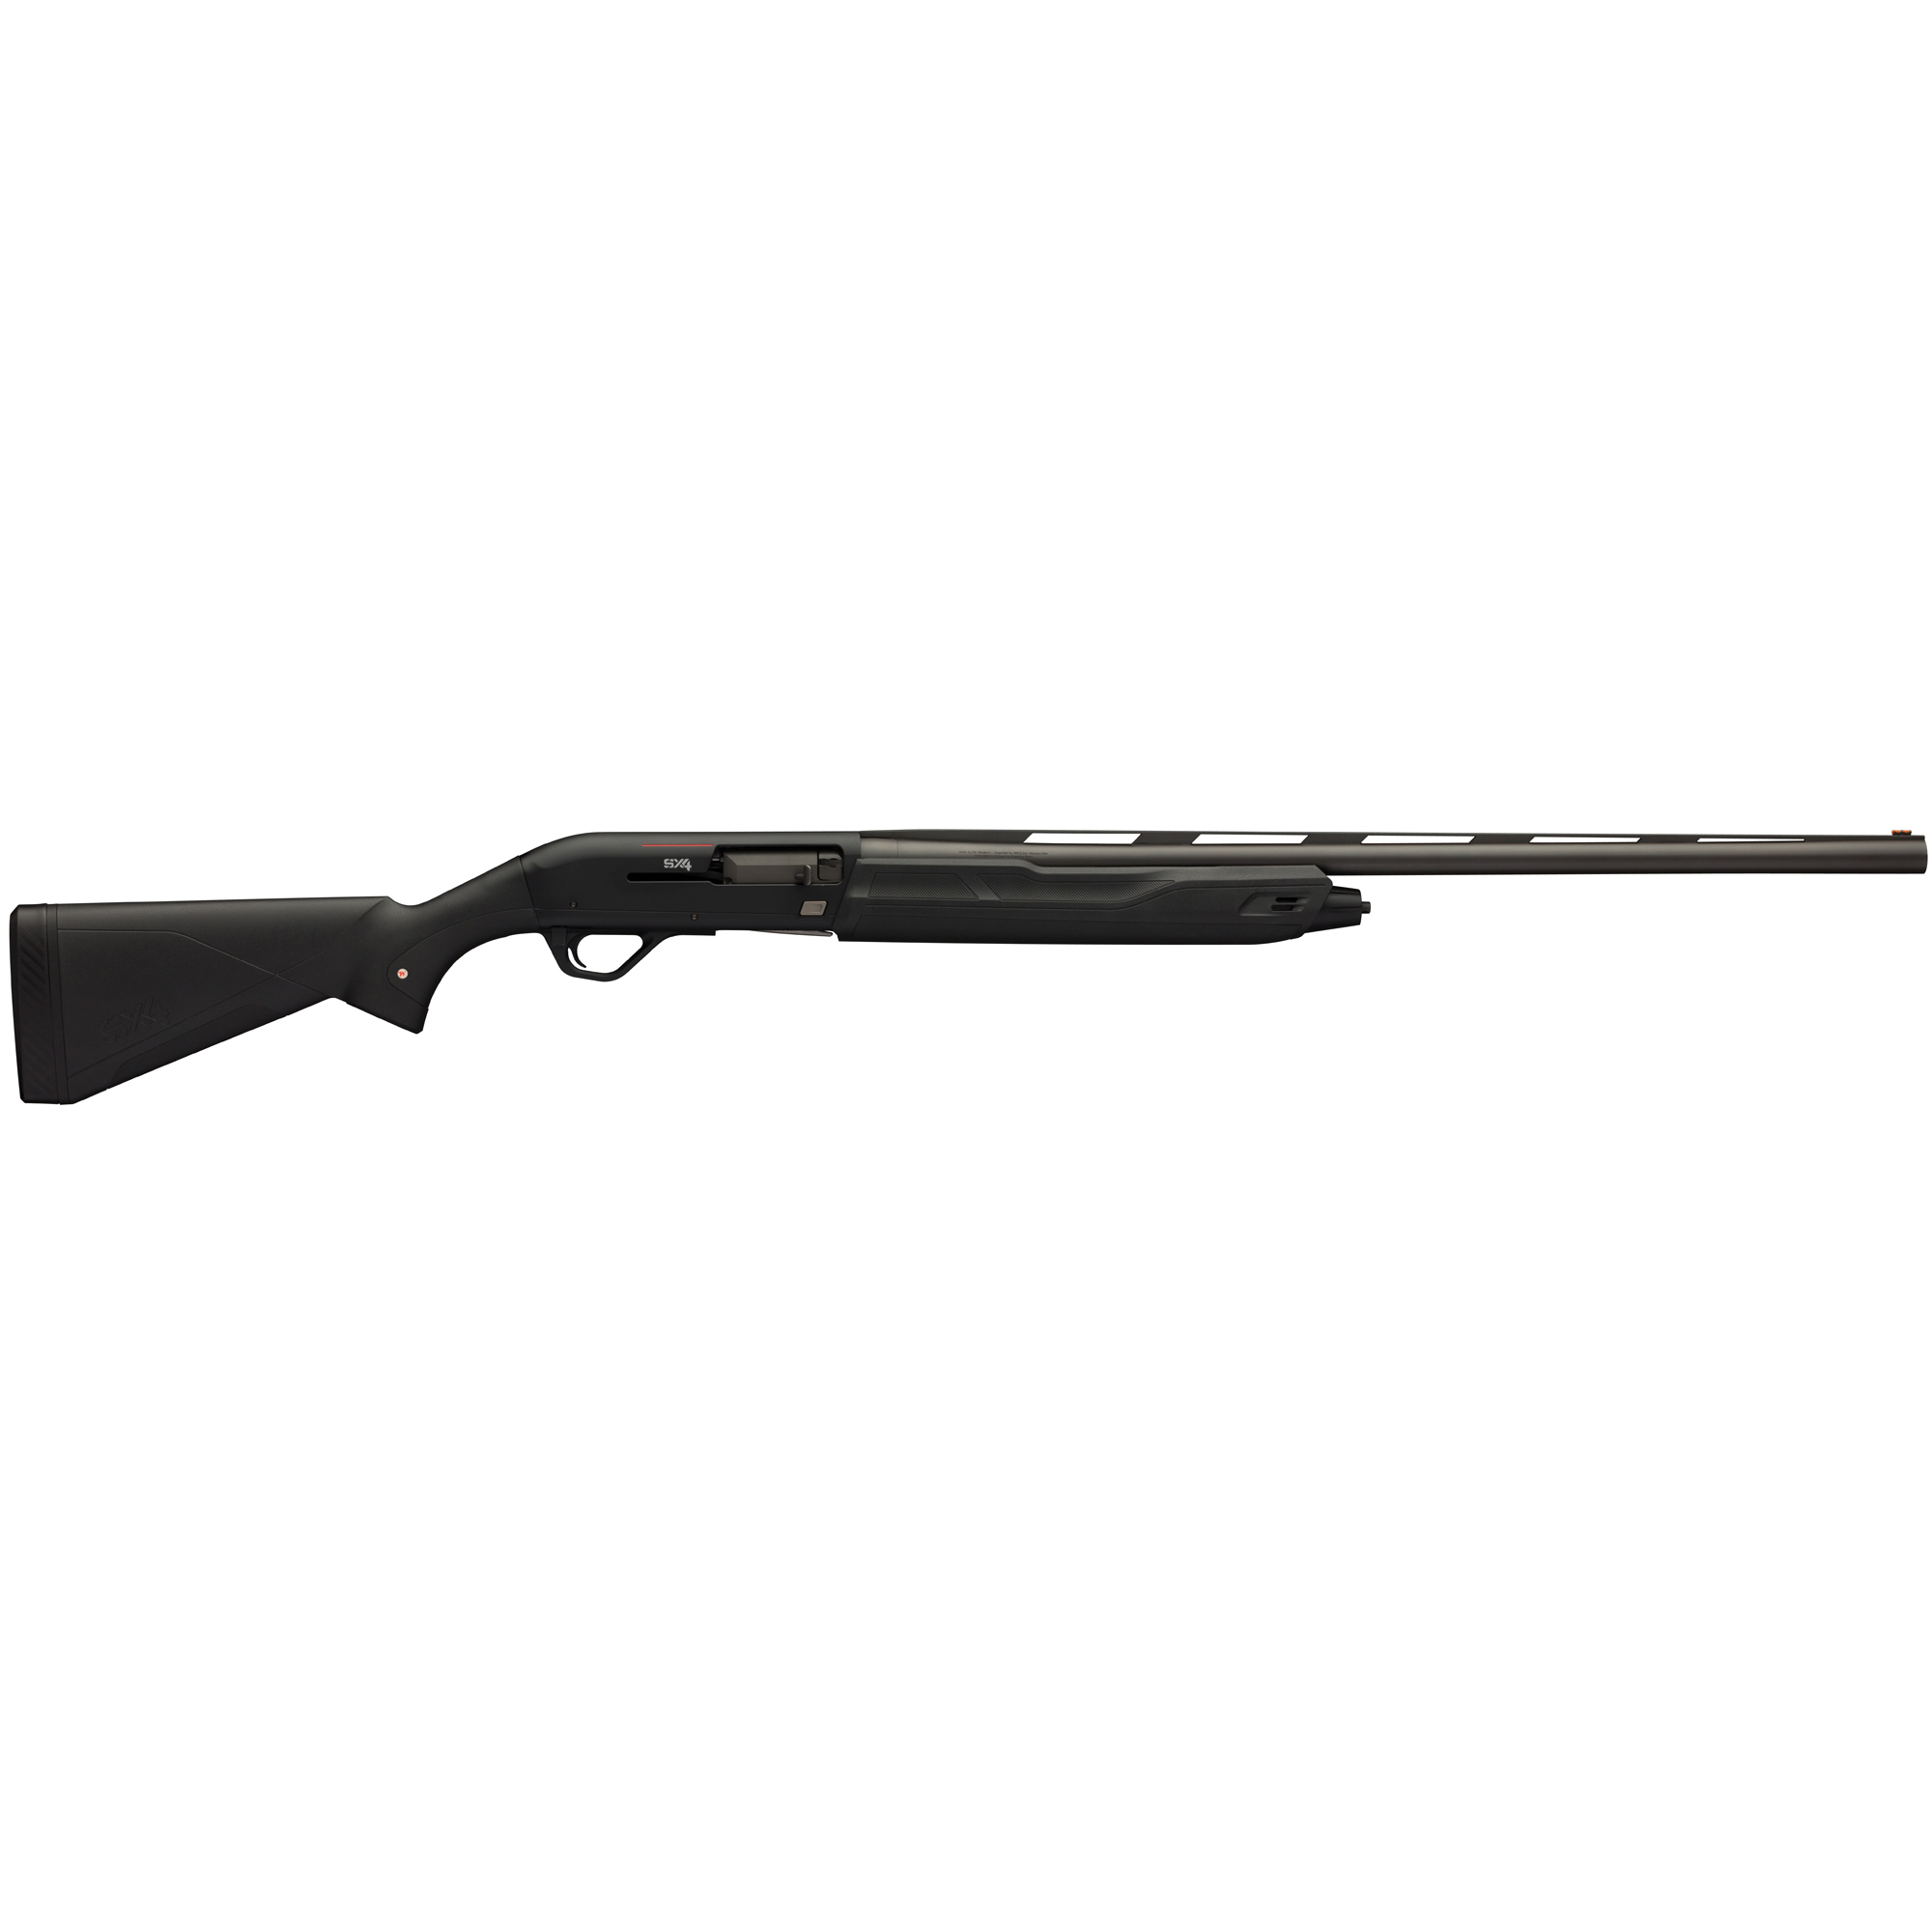 """The autoloading shotgun that's built 4 speed. Winchester Super X(R) Autoloading shotguns have a worldwide reputation for speed"""" reliability and handling. The new Super X4 is lighter"""" faster cycling"""" smoother swinging and more ergonomic than ever before."""